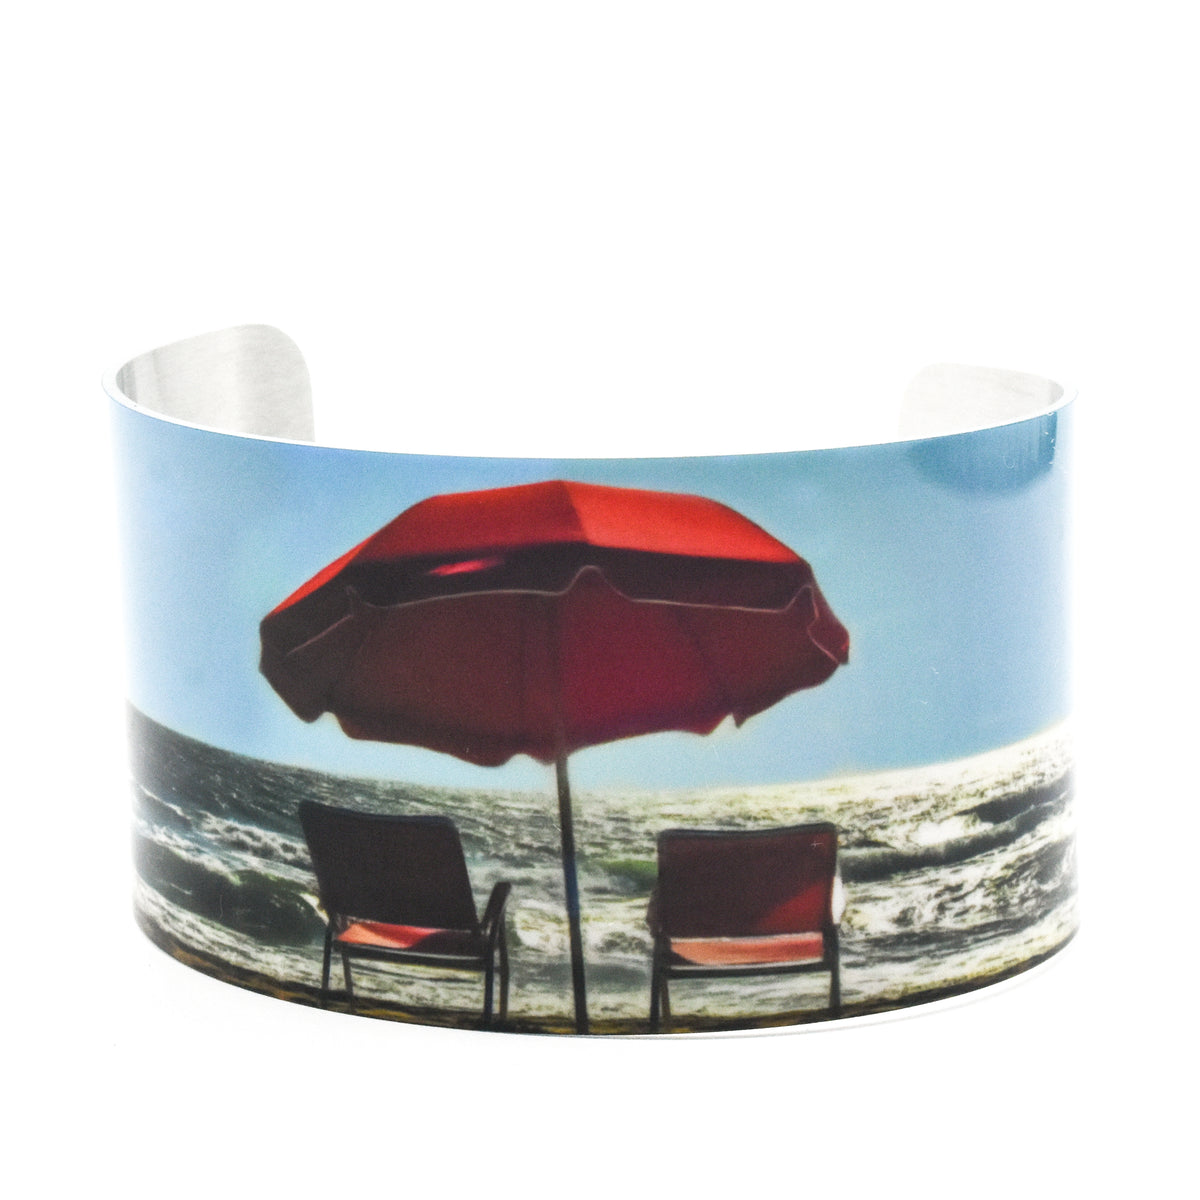 Standard view of Beach Day Cuff Bracelet | Wear the Wonder